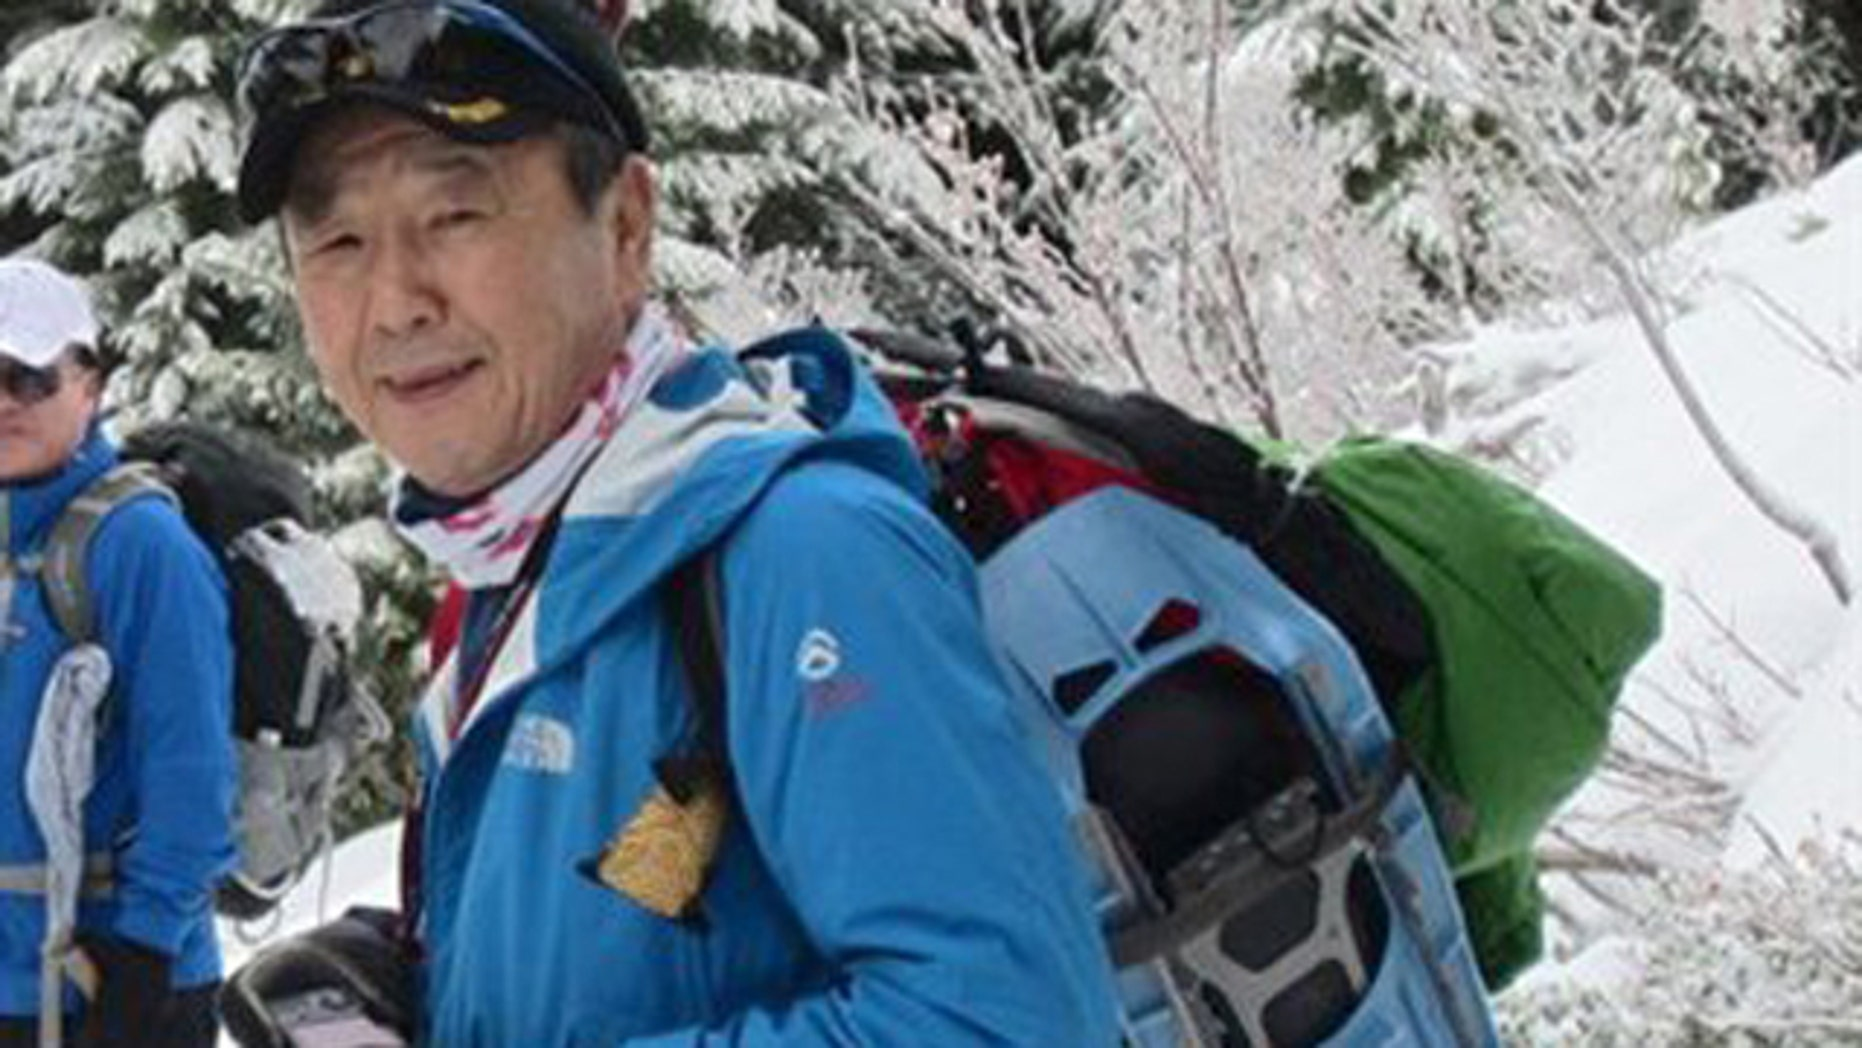 In this undated photo provided by Mount Rainier National Park, Yong Chun Kim, 66, of Tacoma, is shown.